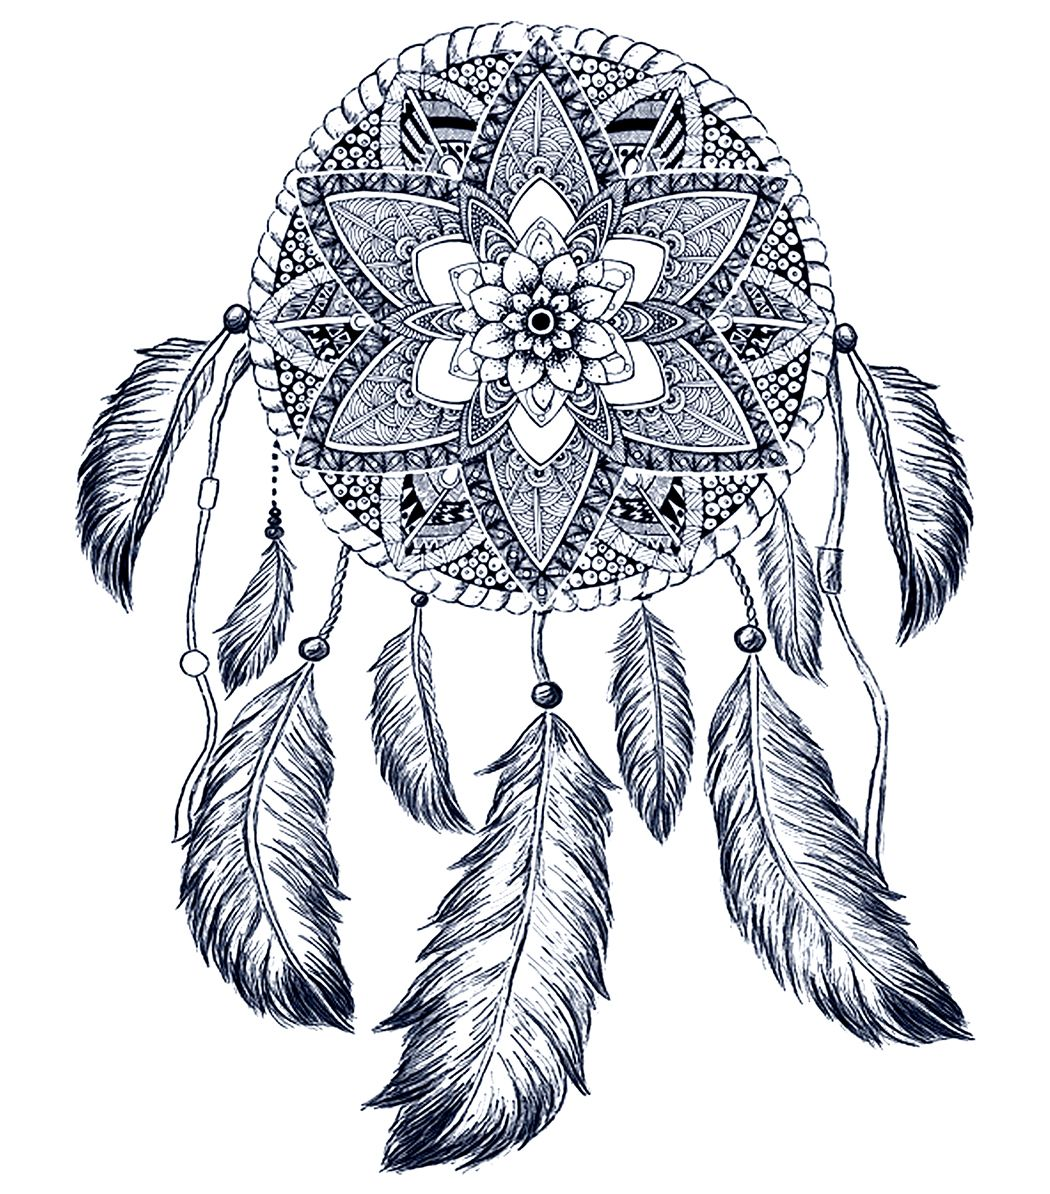 Hand drawing dream catcher graphic dreamcatcher hand for Dream catcher graphic